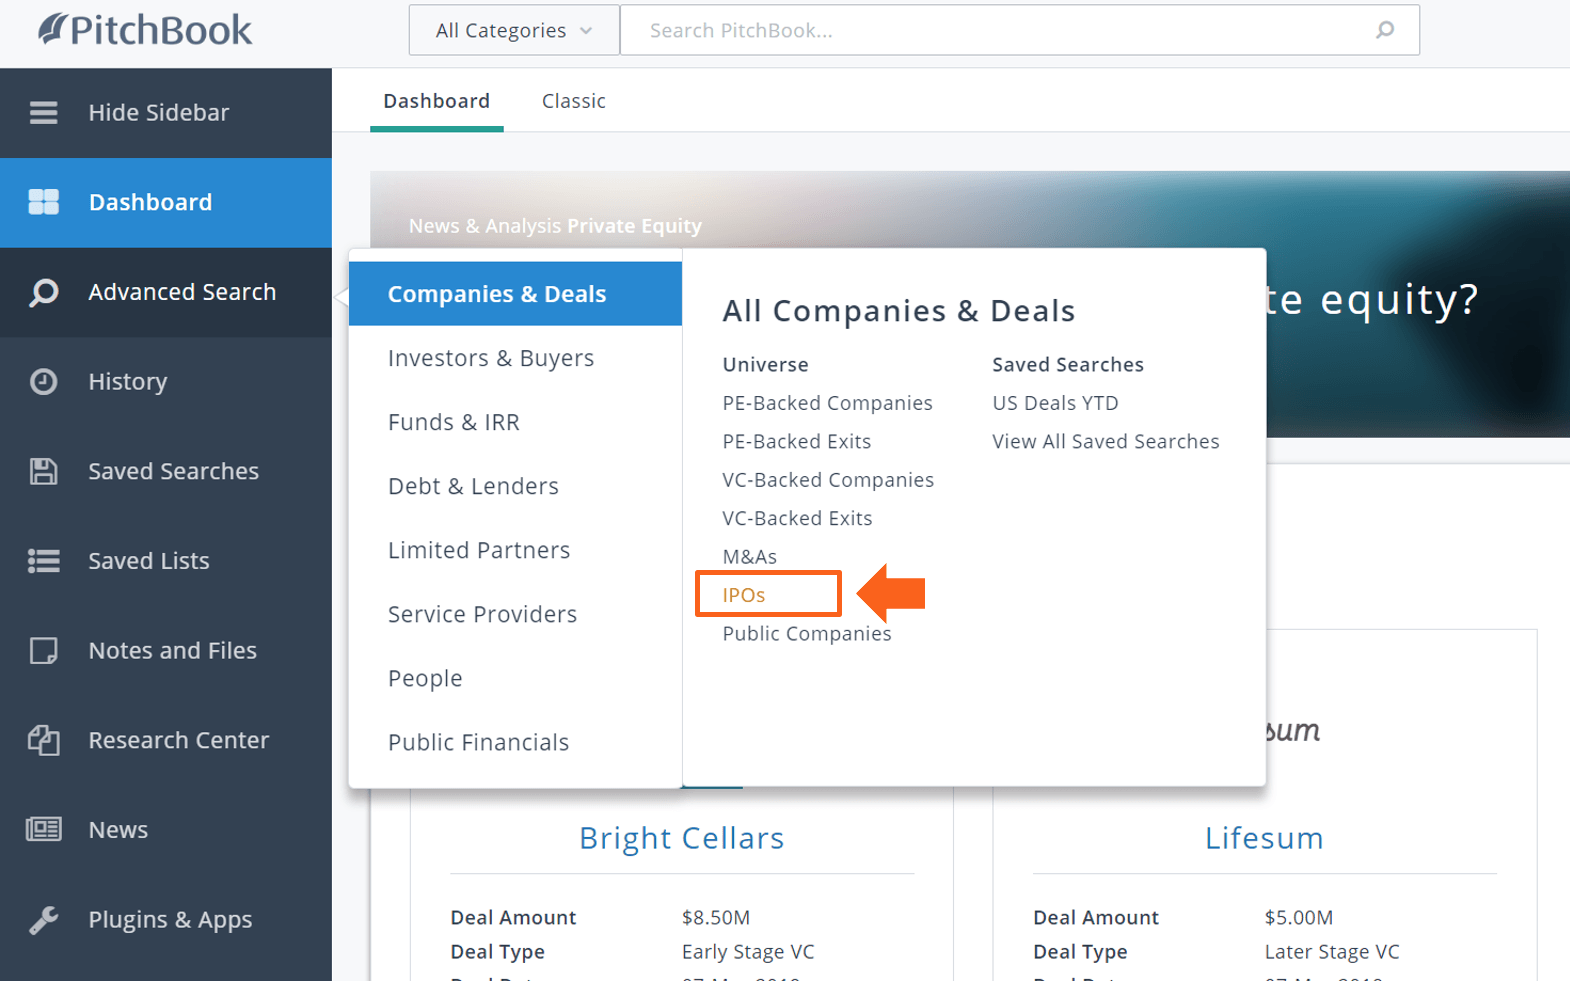 PitchBook advanced search ipo